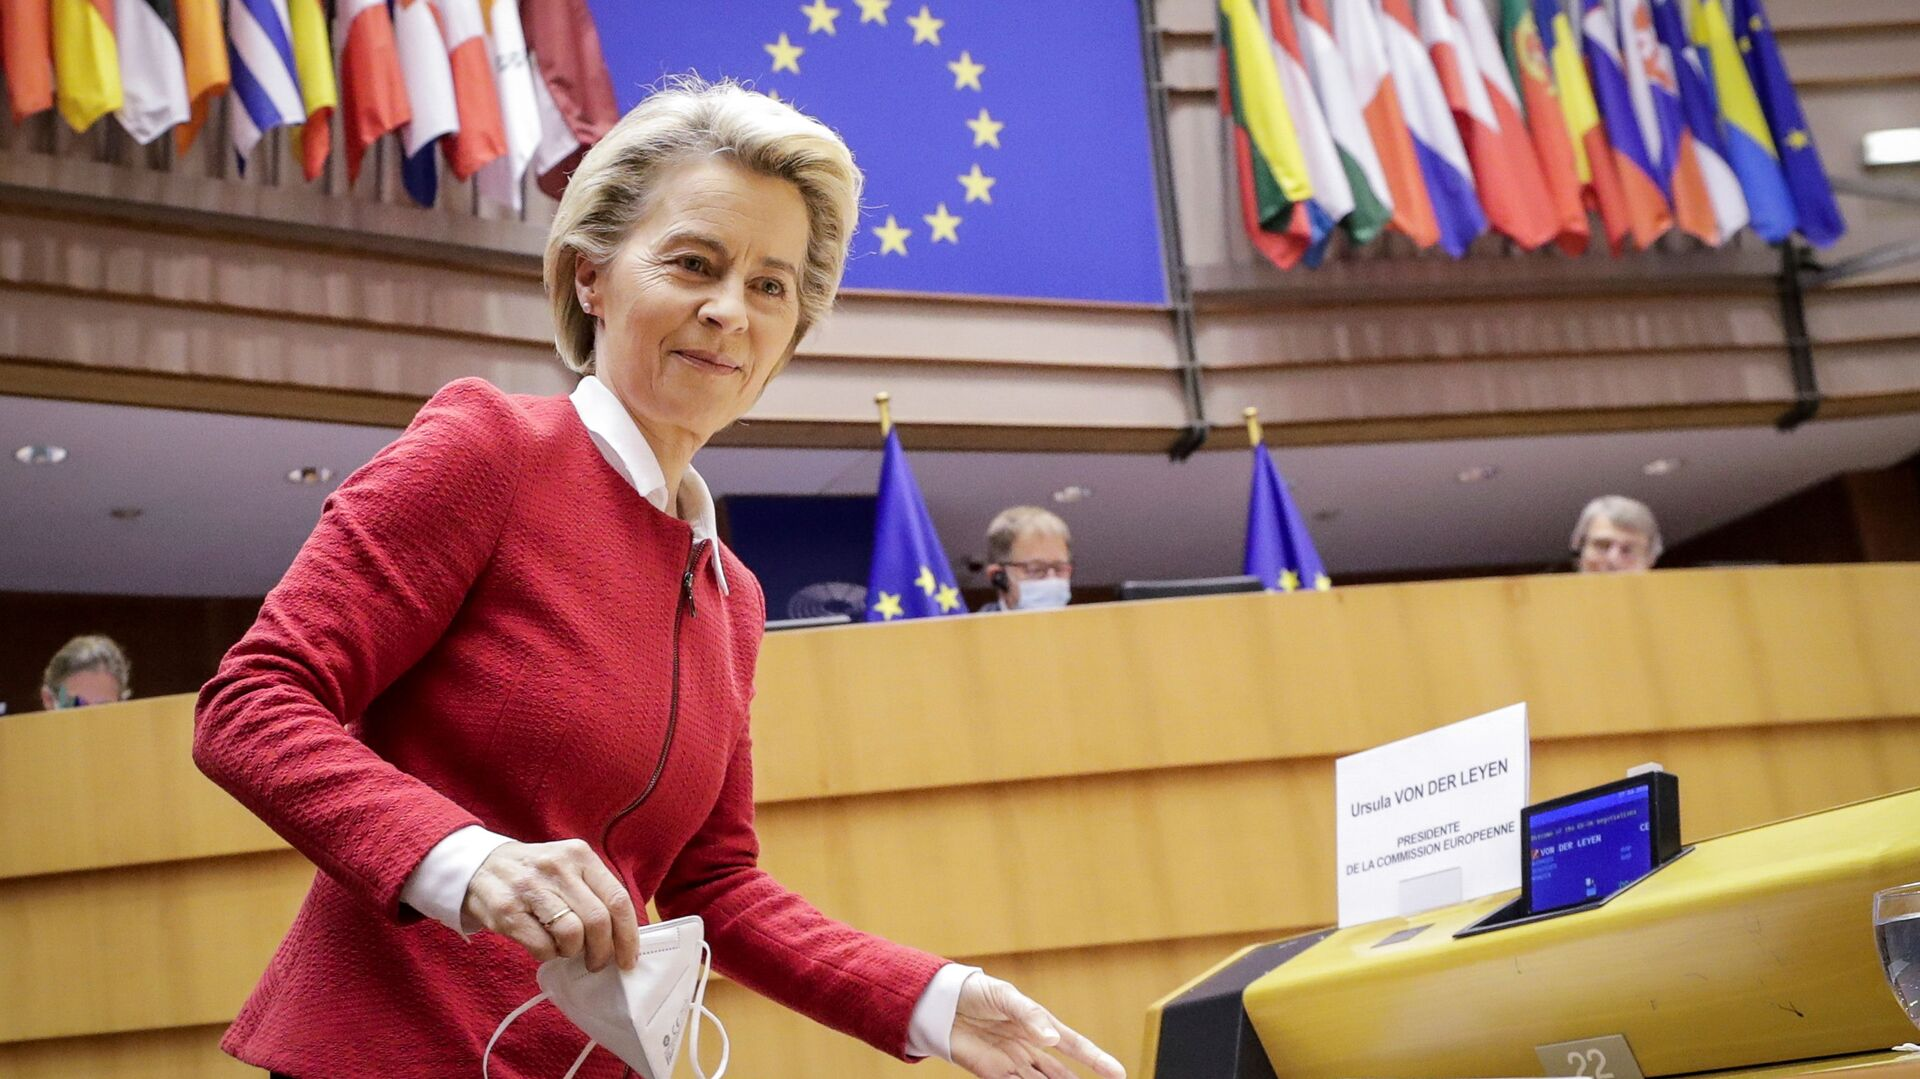 European Commission President Ursula von der Leyen attends the debate on EU-UK trade and cooperation agreement during the second day of a plenary session at the European Parliament in Brussels, Belgium April 27, 2021 - Sputnik International, 1920, 15.09.2021